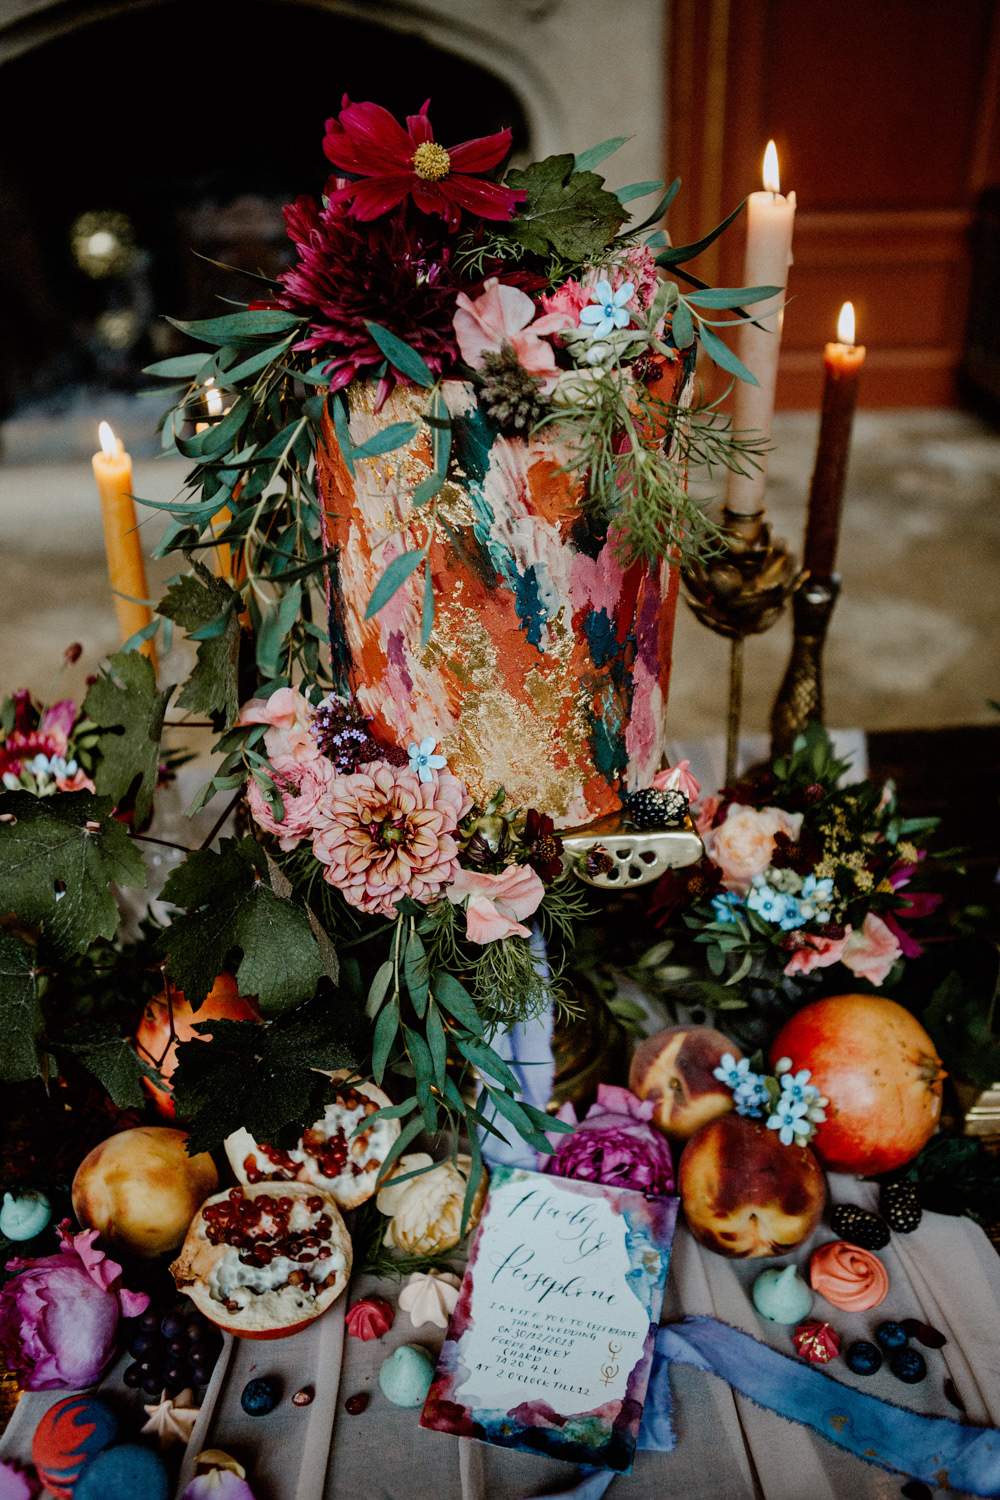 Cake Table Candles Flowers Greenery Fruit Paint Brush Stroke Art Ethereal Romantic Wedding Ideas Katherine Newman Photography